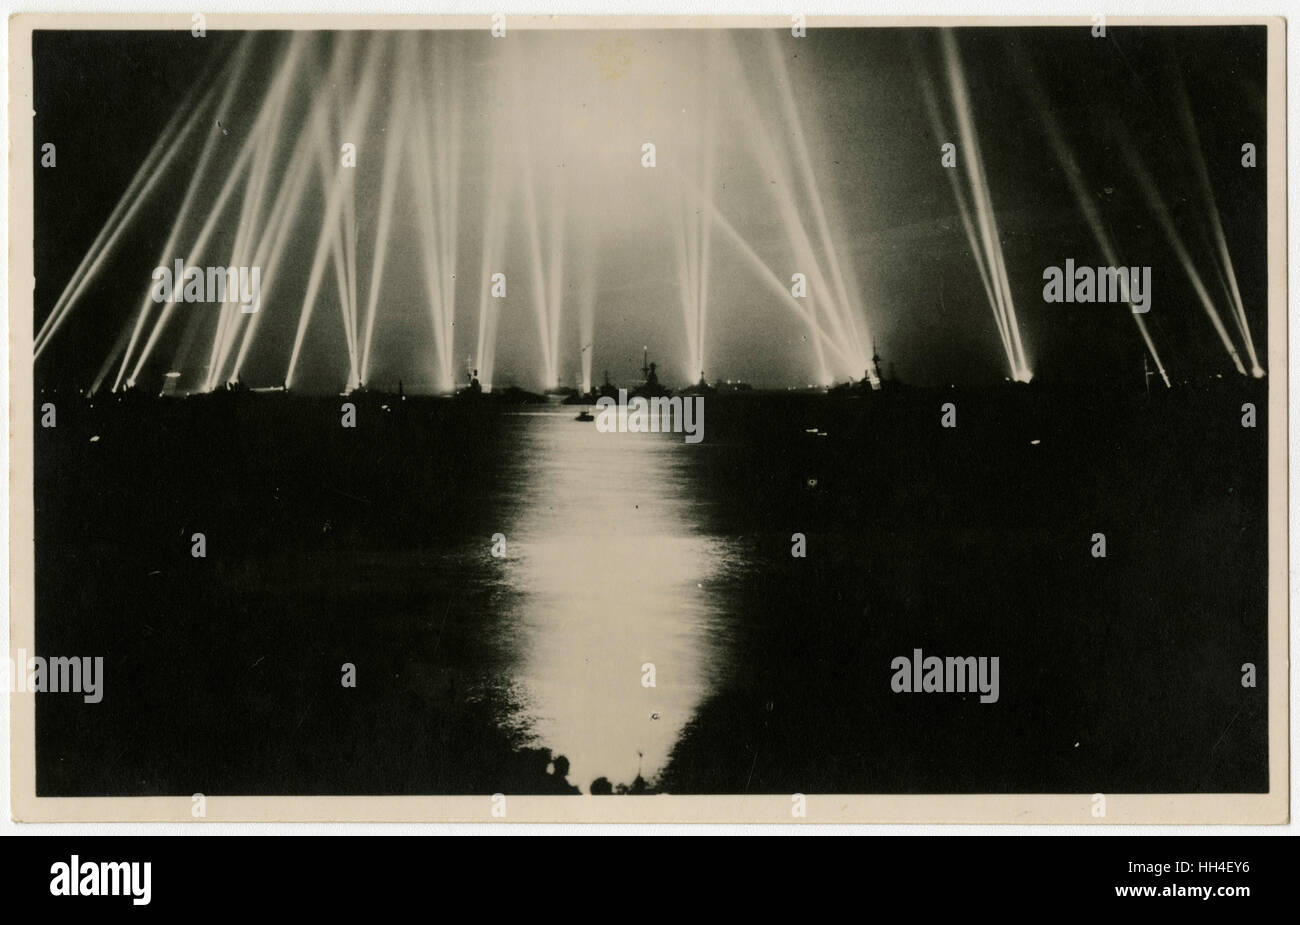 Jubilee Naval Review - Spithead - battery of searchlights of the fleet - Silver Jubilee of King George V in 1935. - Stock Image